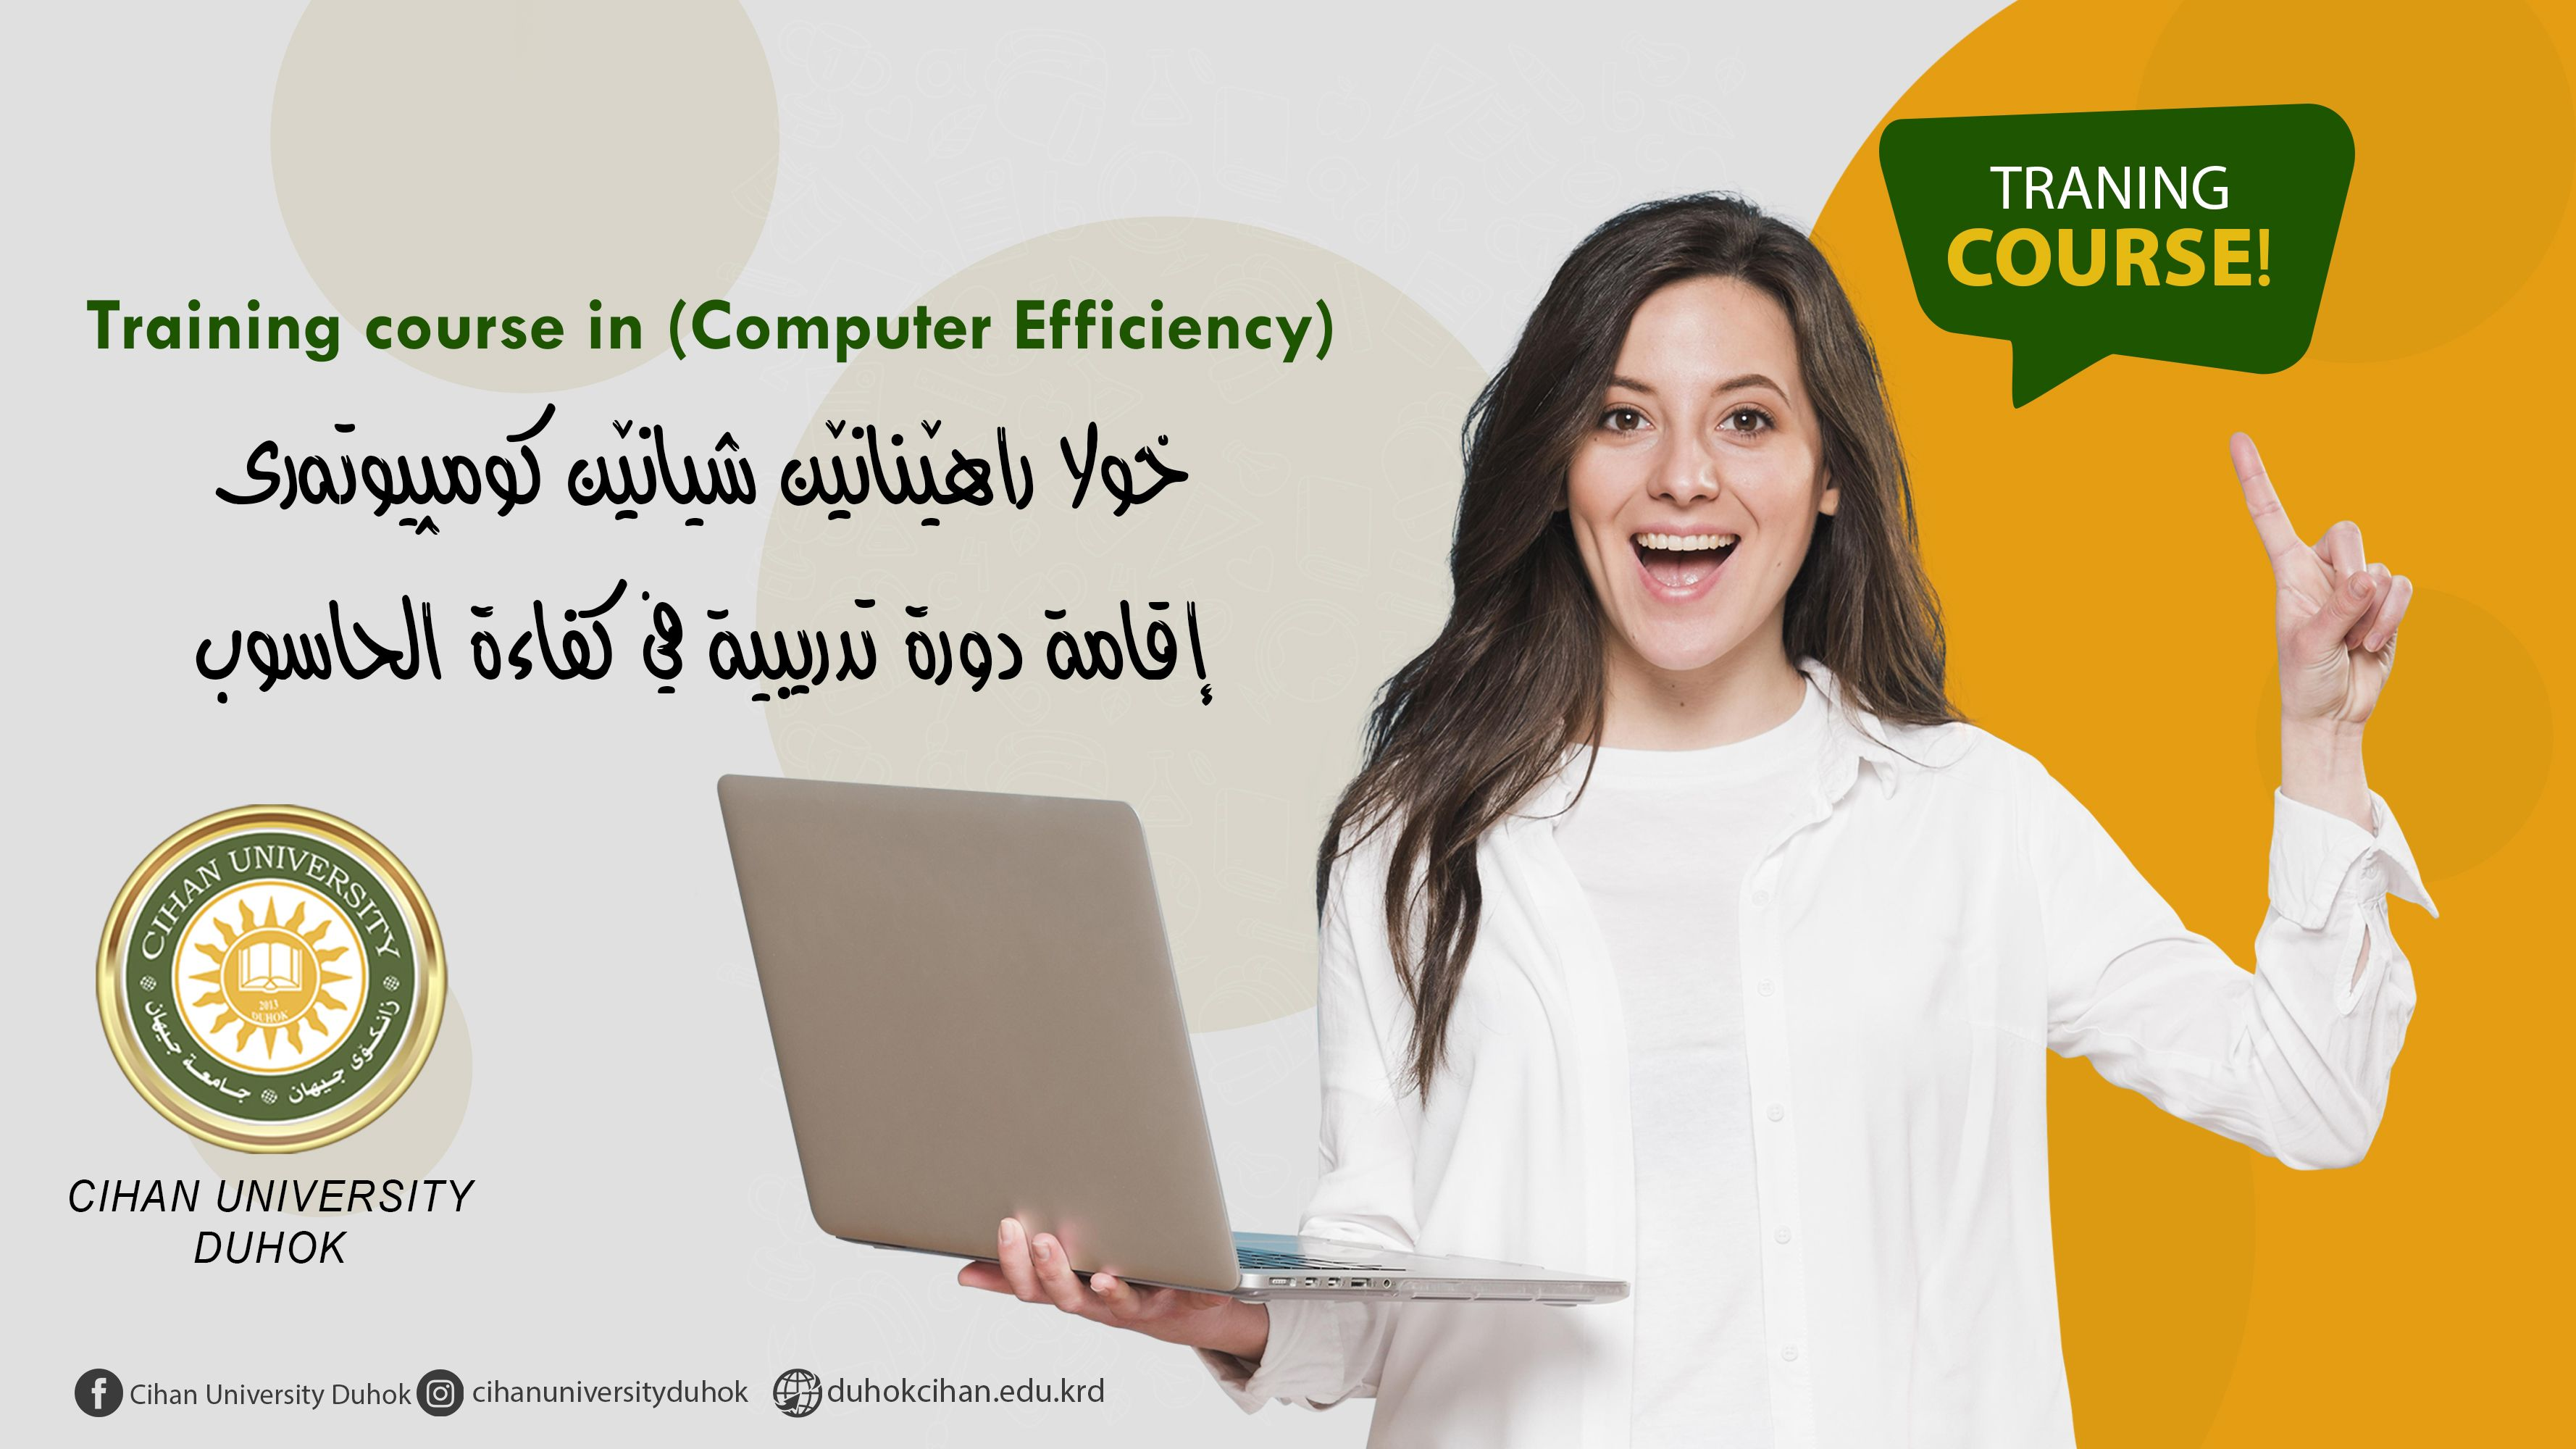 Online training course in (Computer Efficiency)